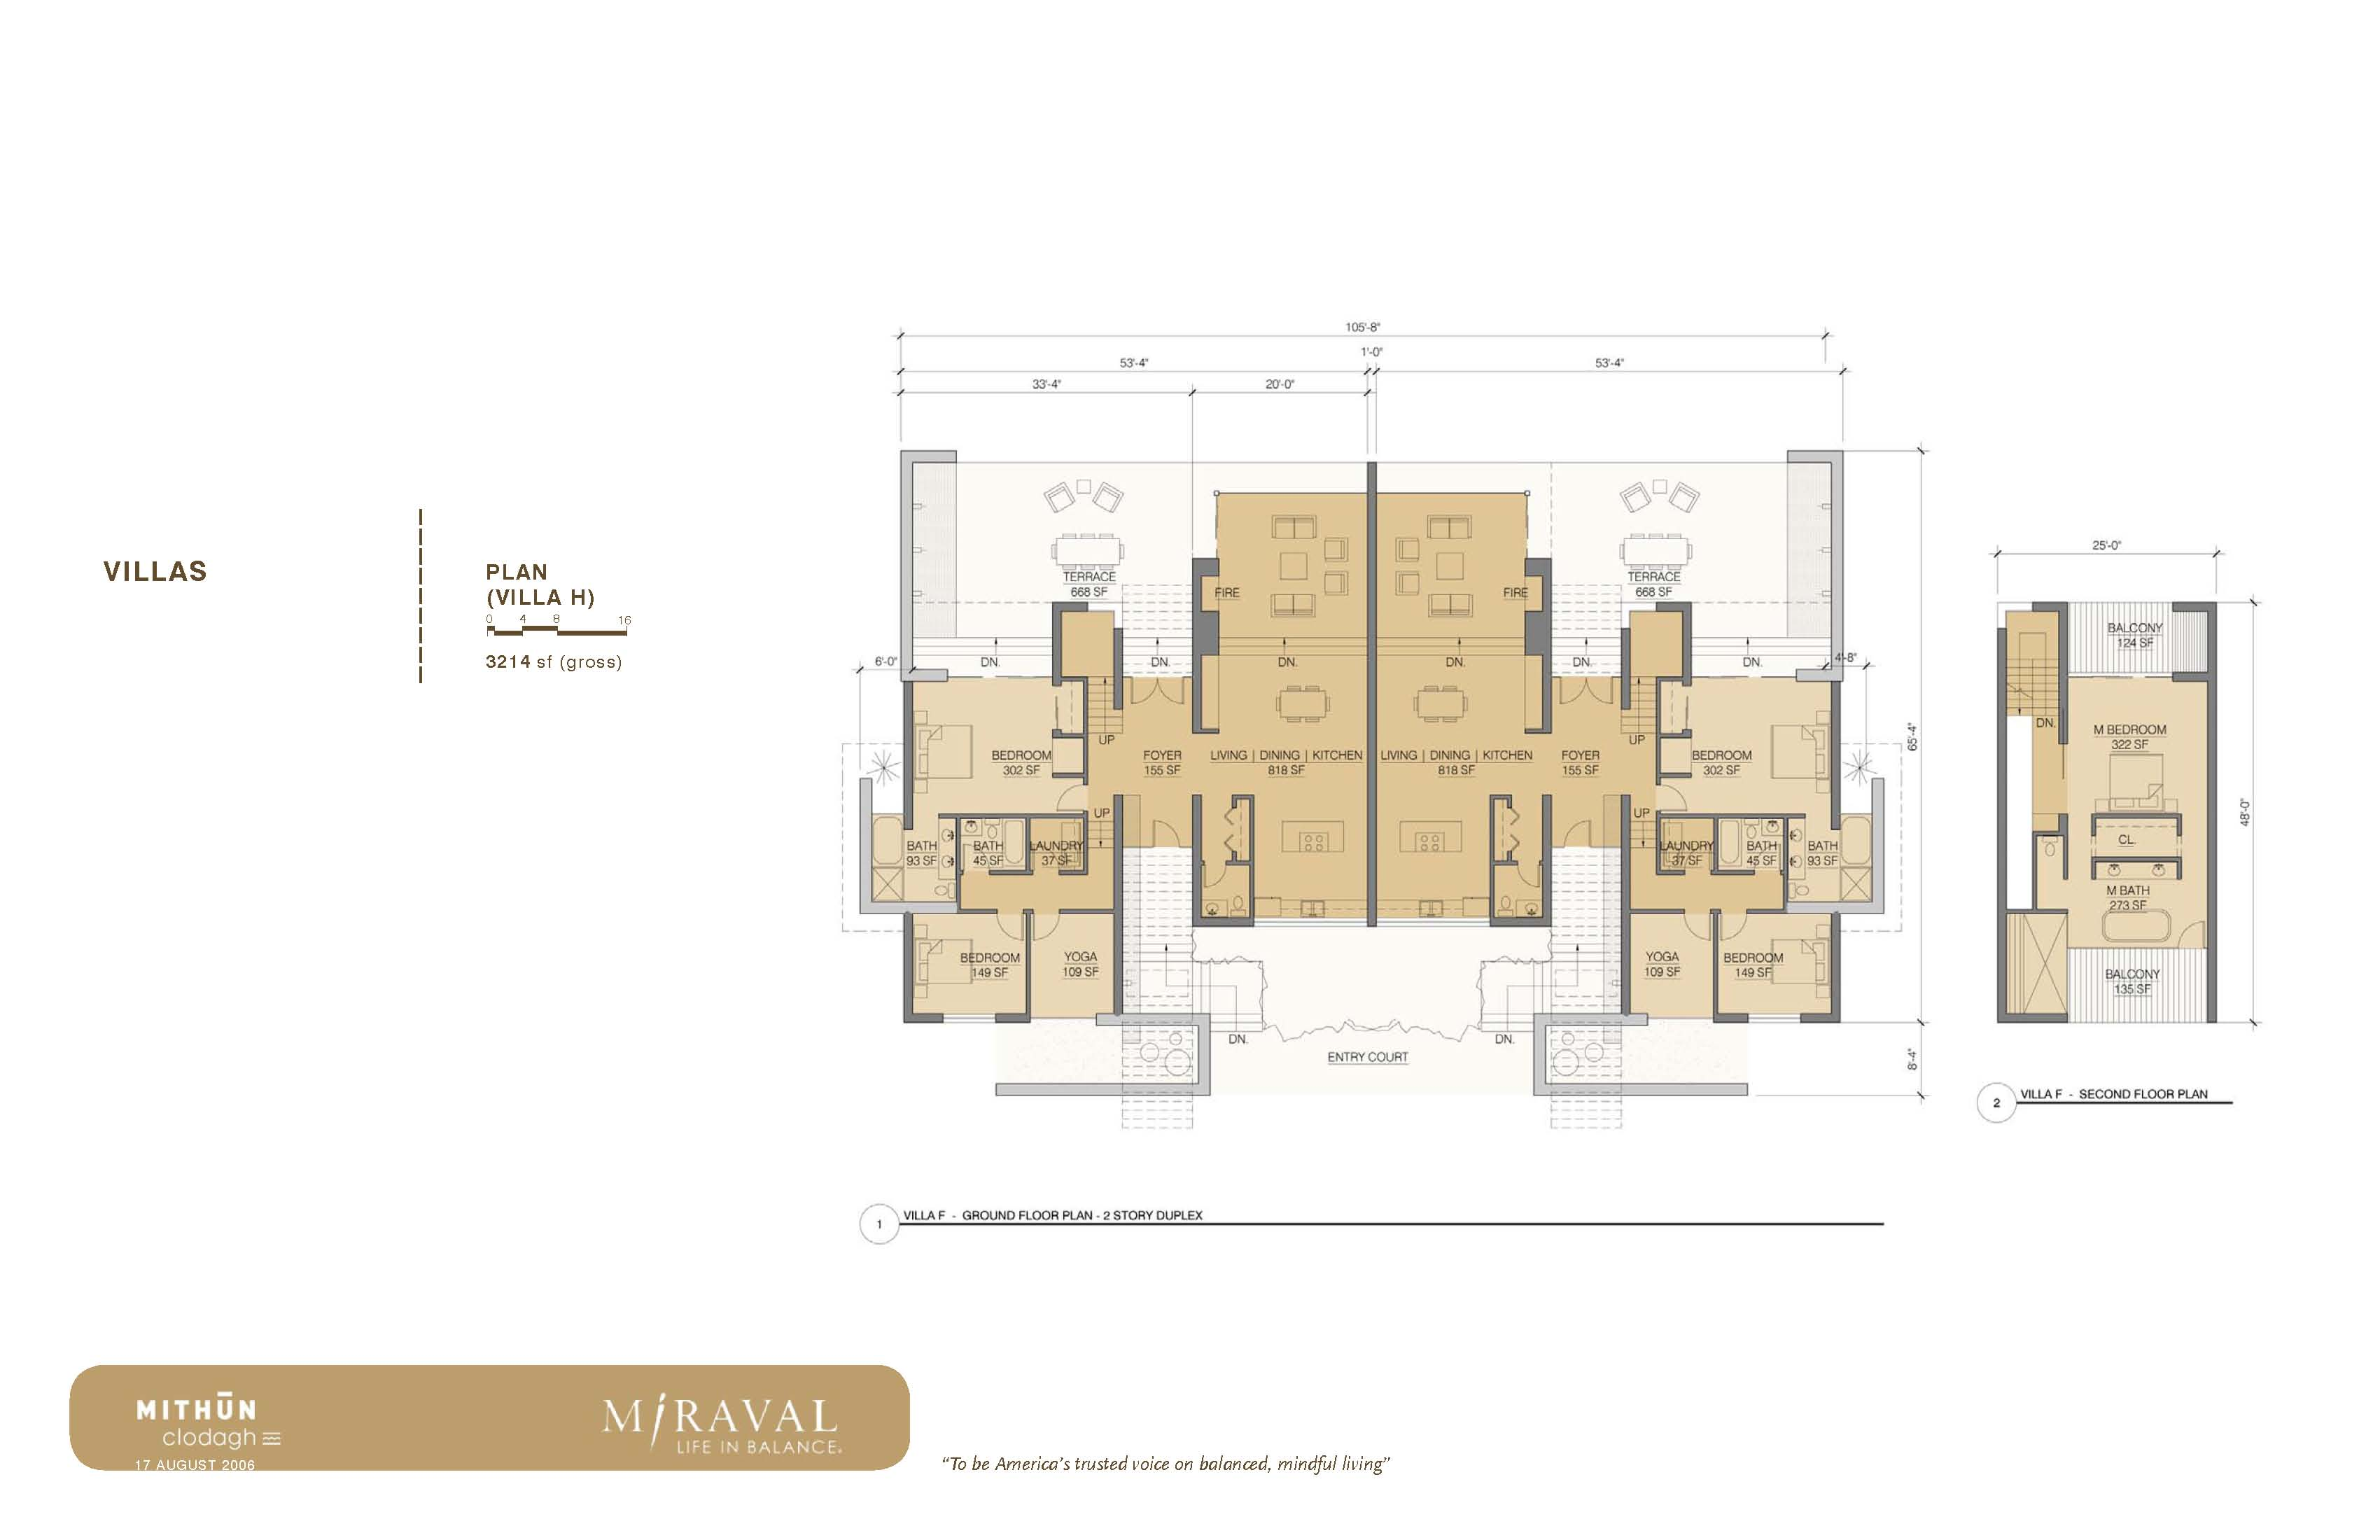 Design & Construction Management And Budgeting, Miraval